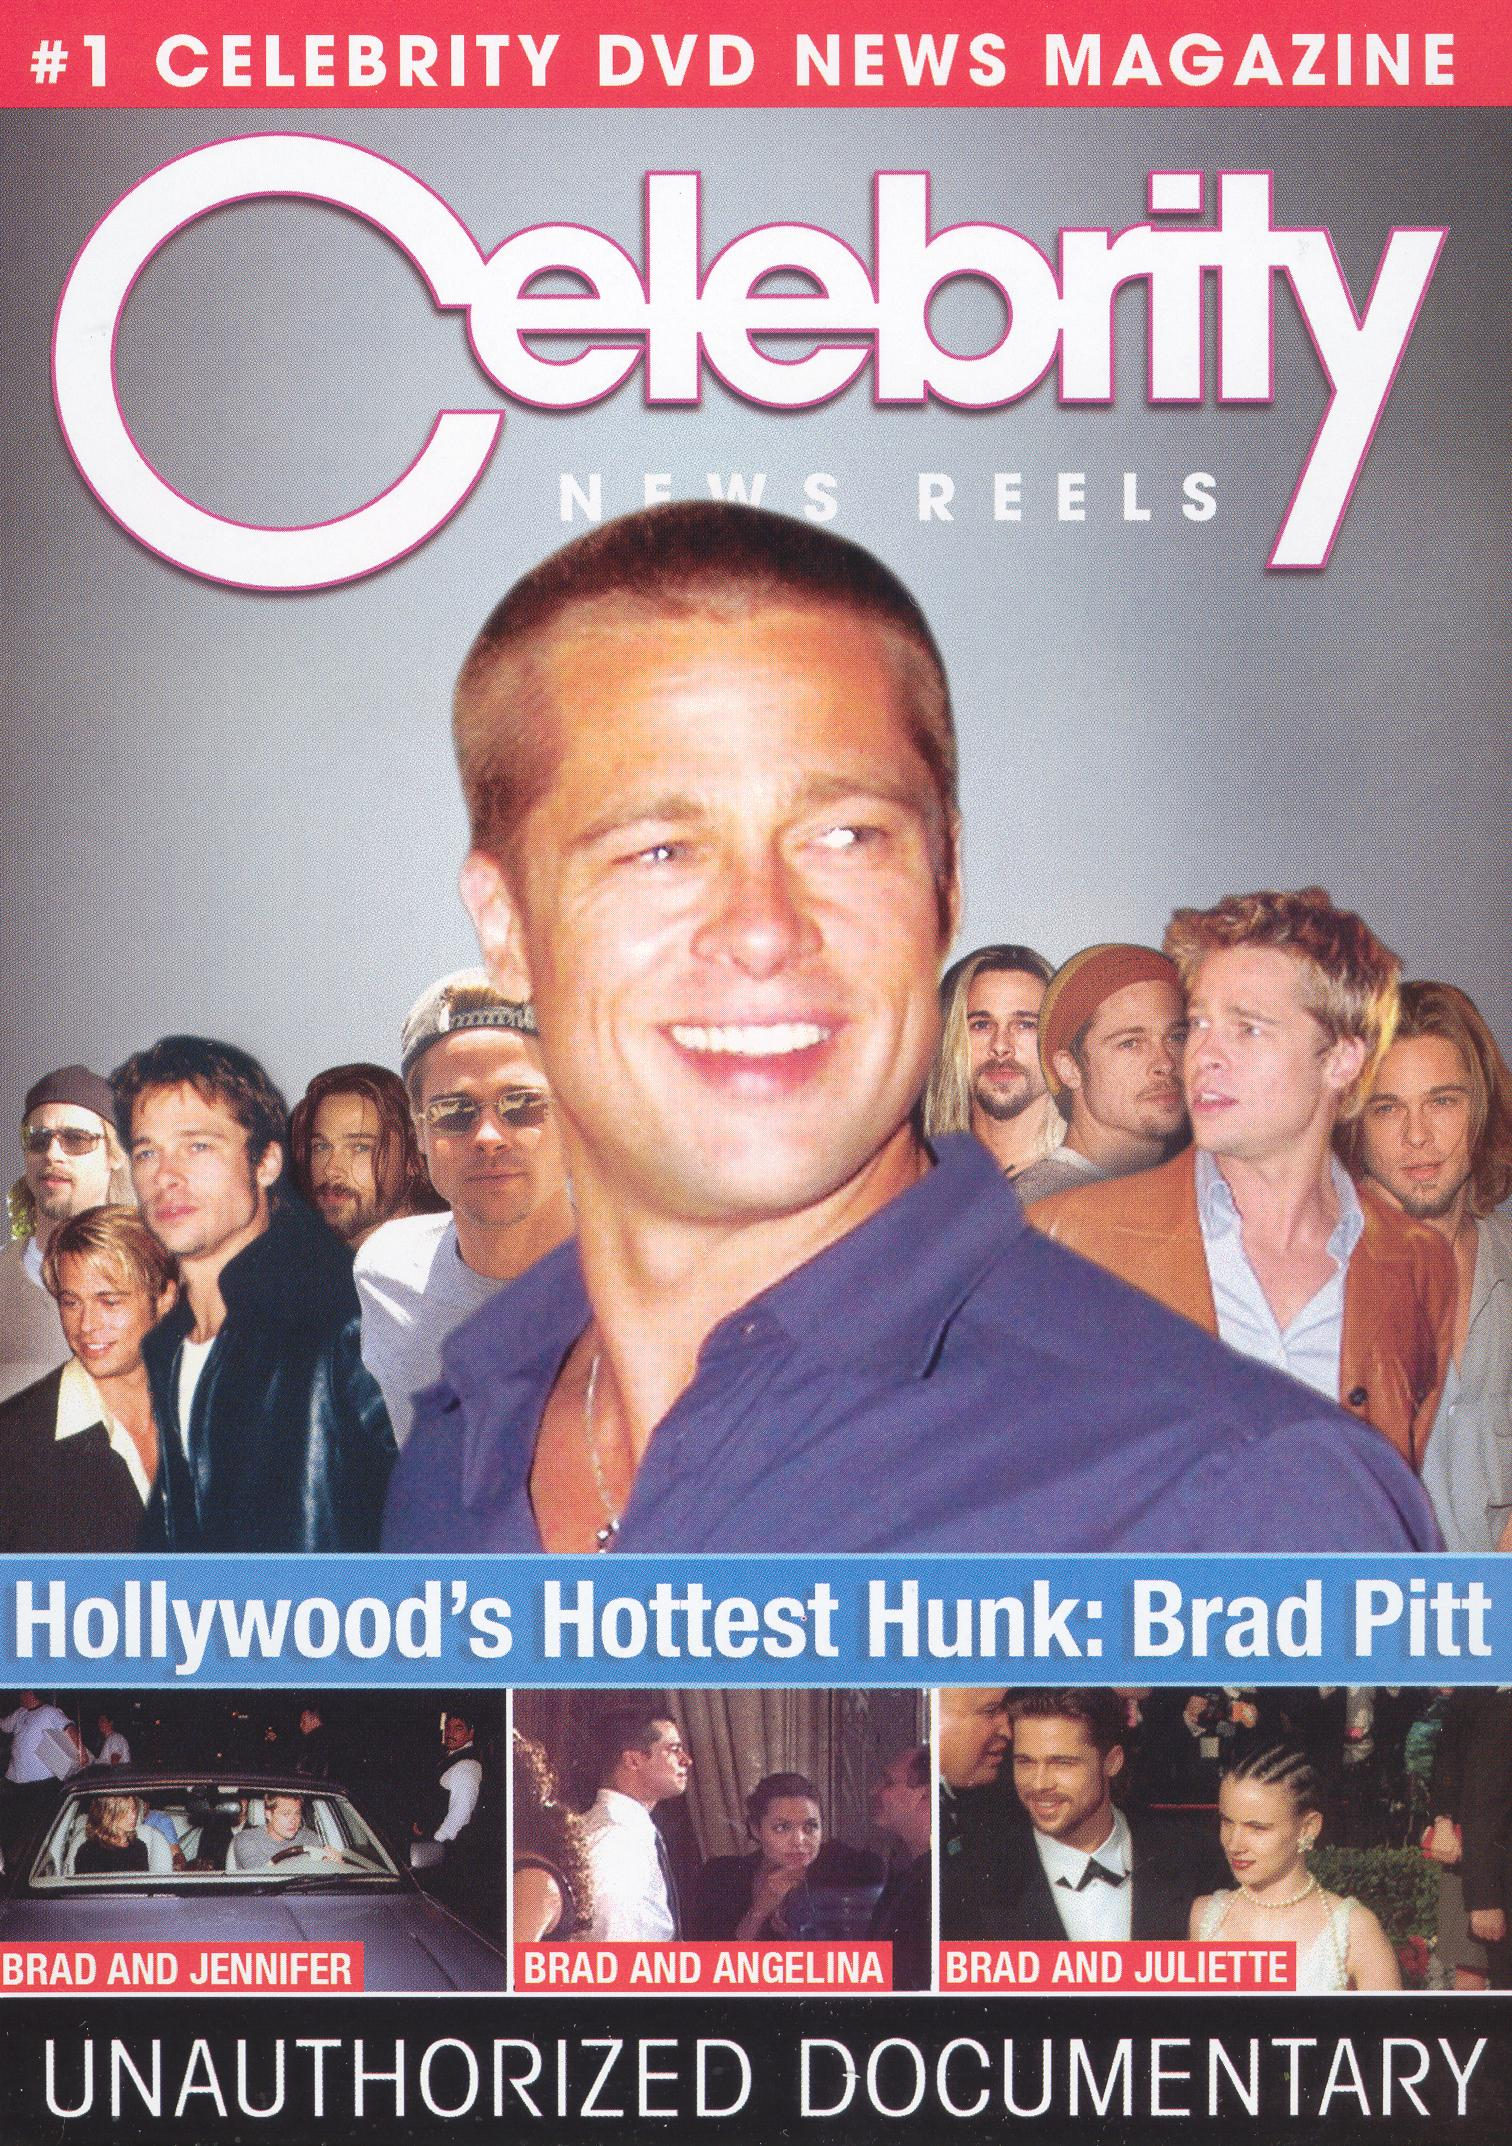 Celebrity News Reels: Hollywod's Hottest Hunk - Brad Pitt